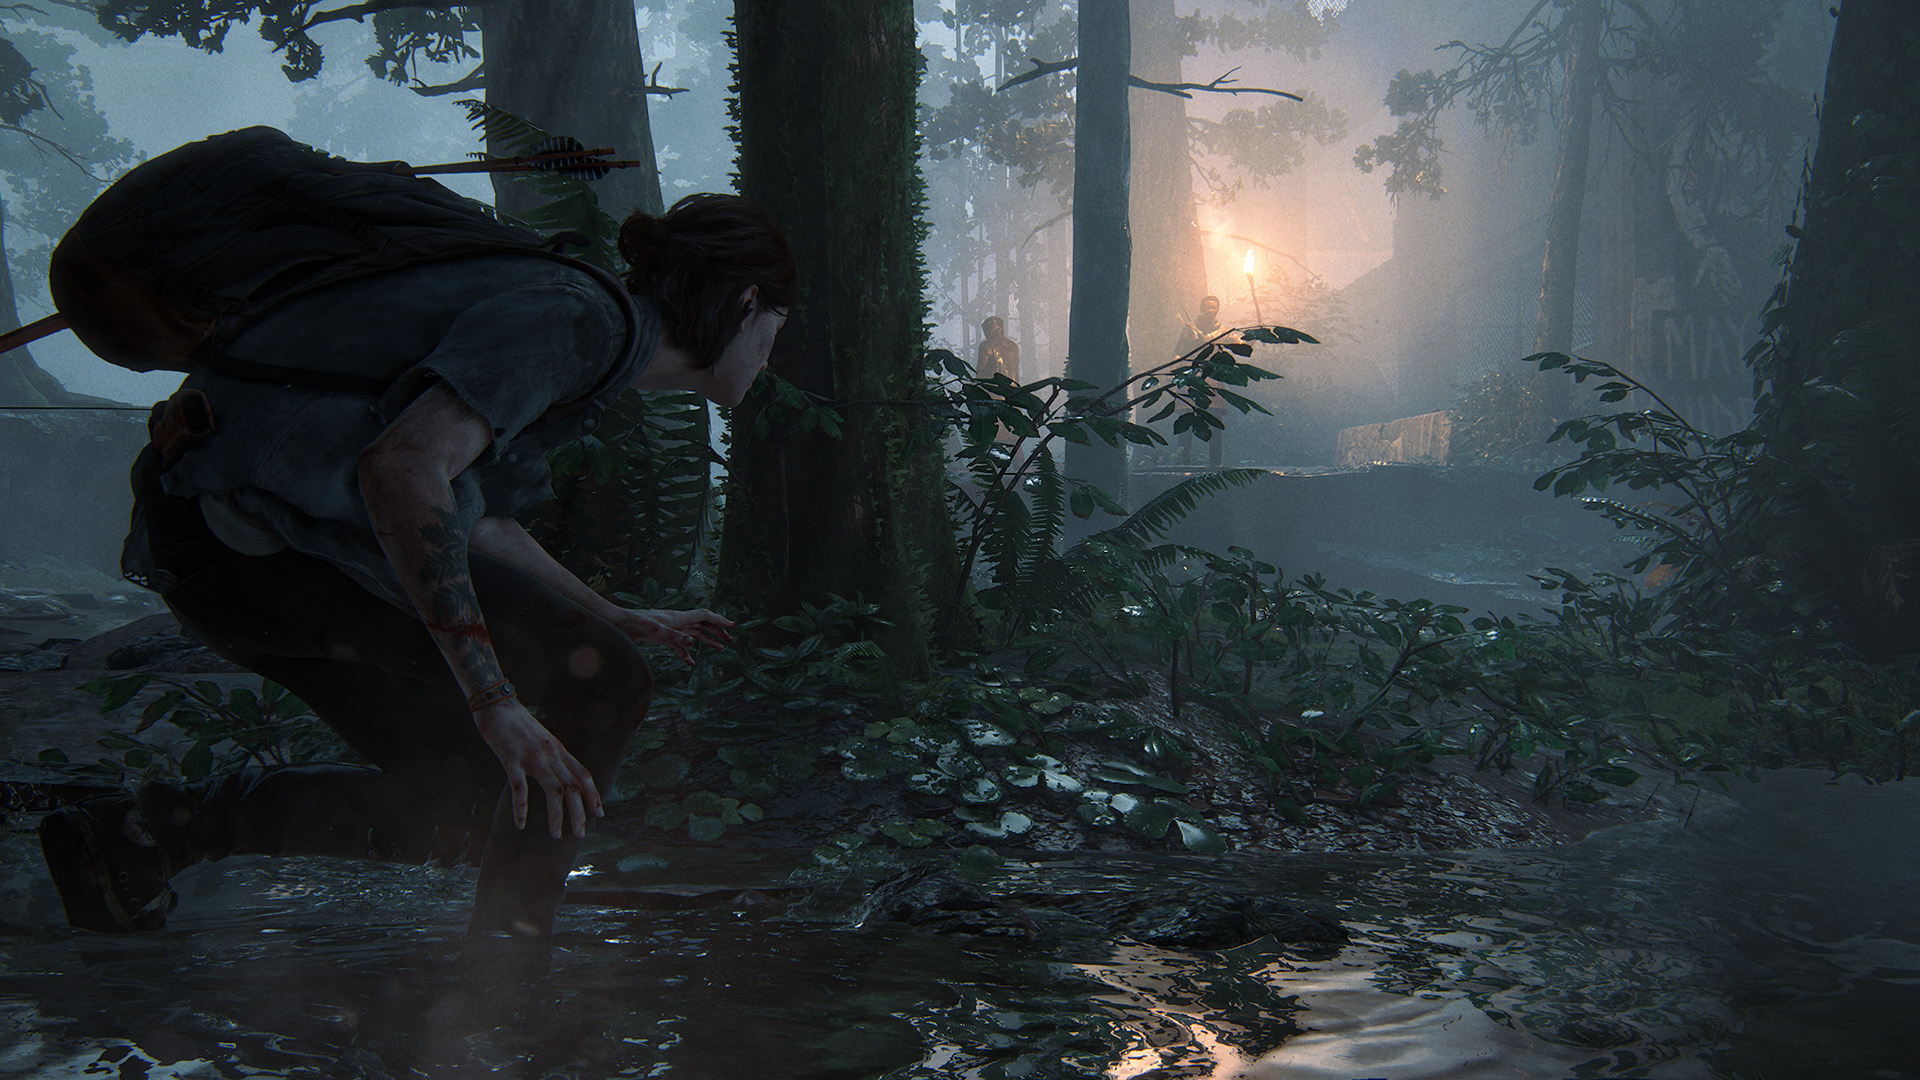 The Last Of Us 2 Free CD Key 2